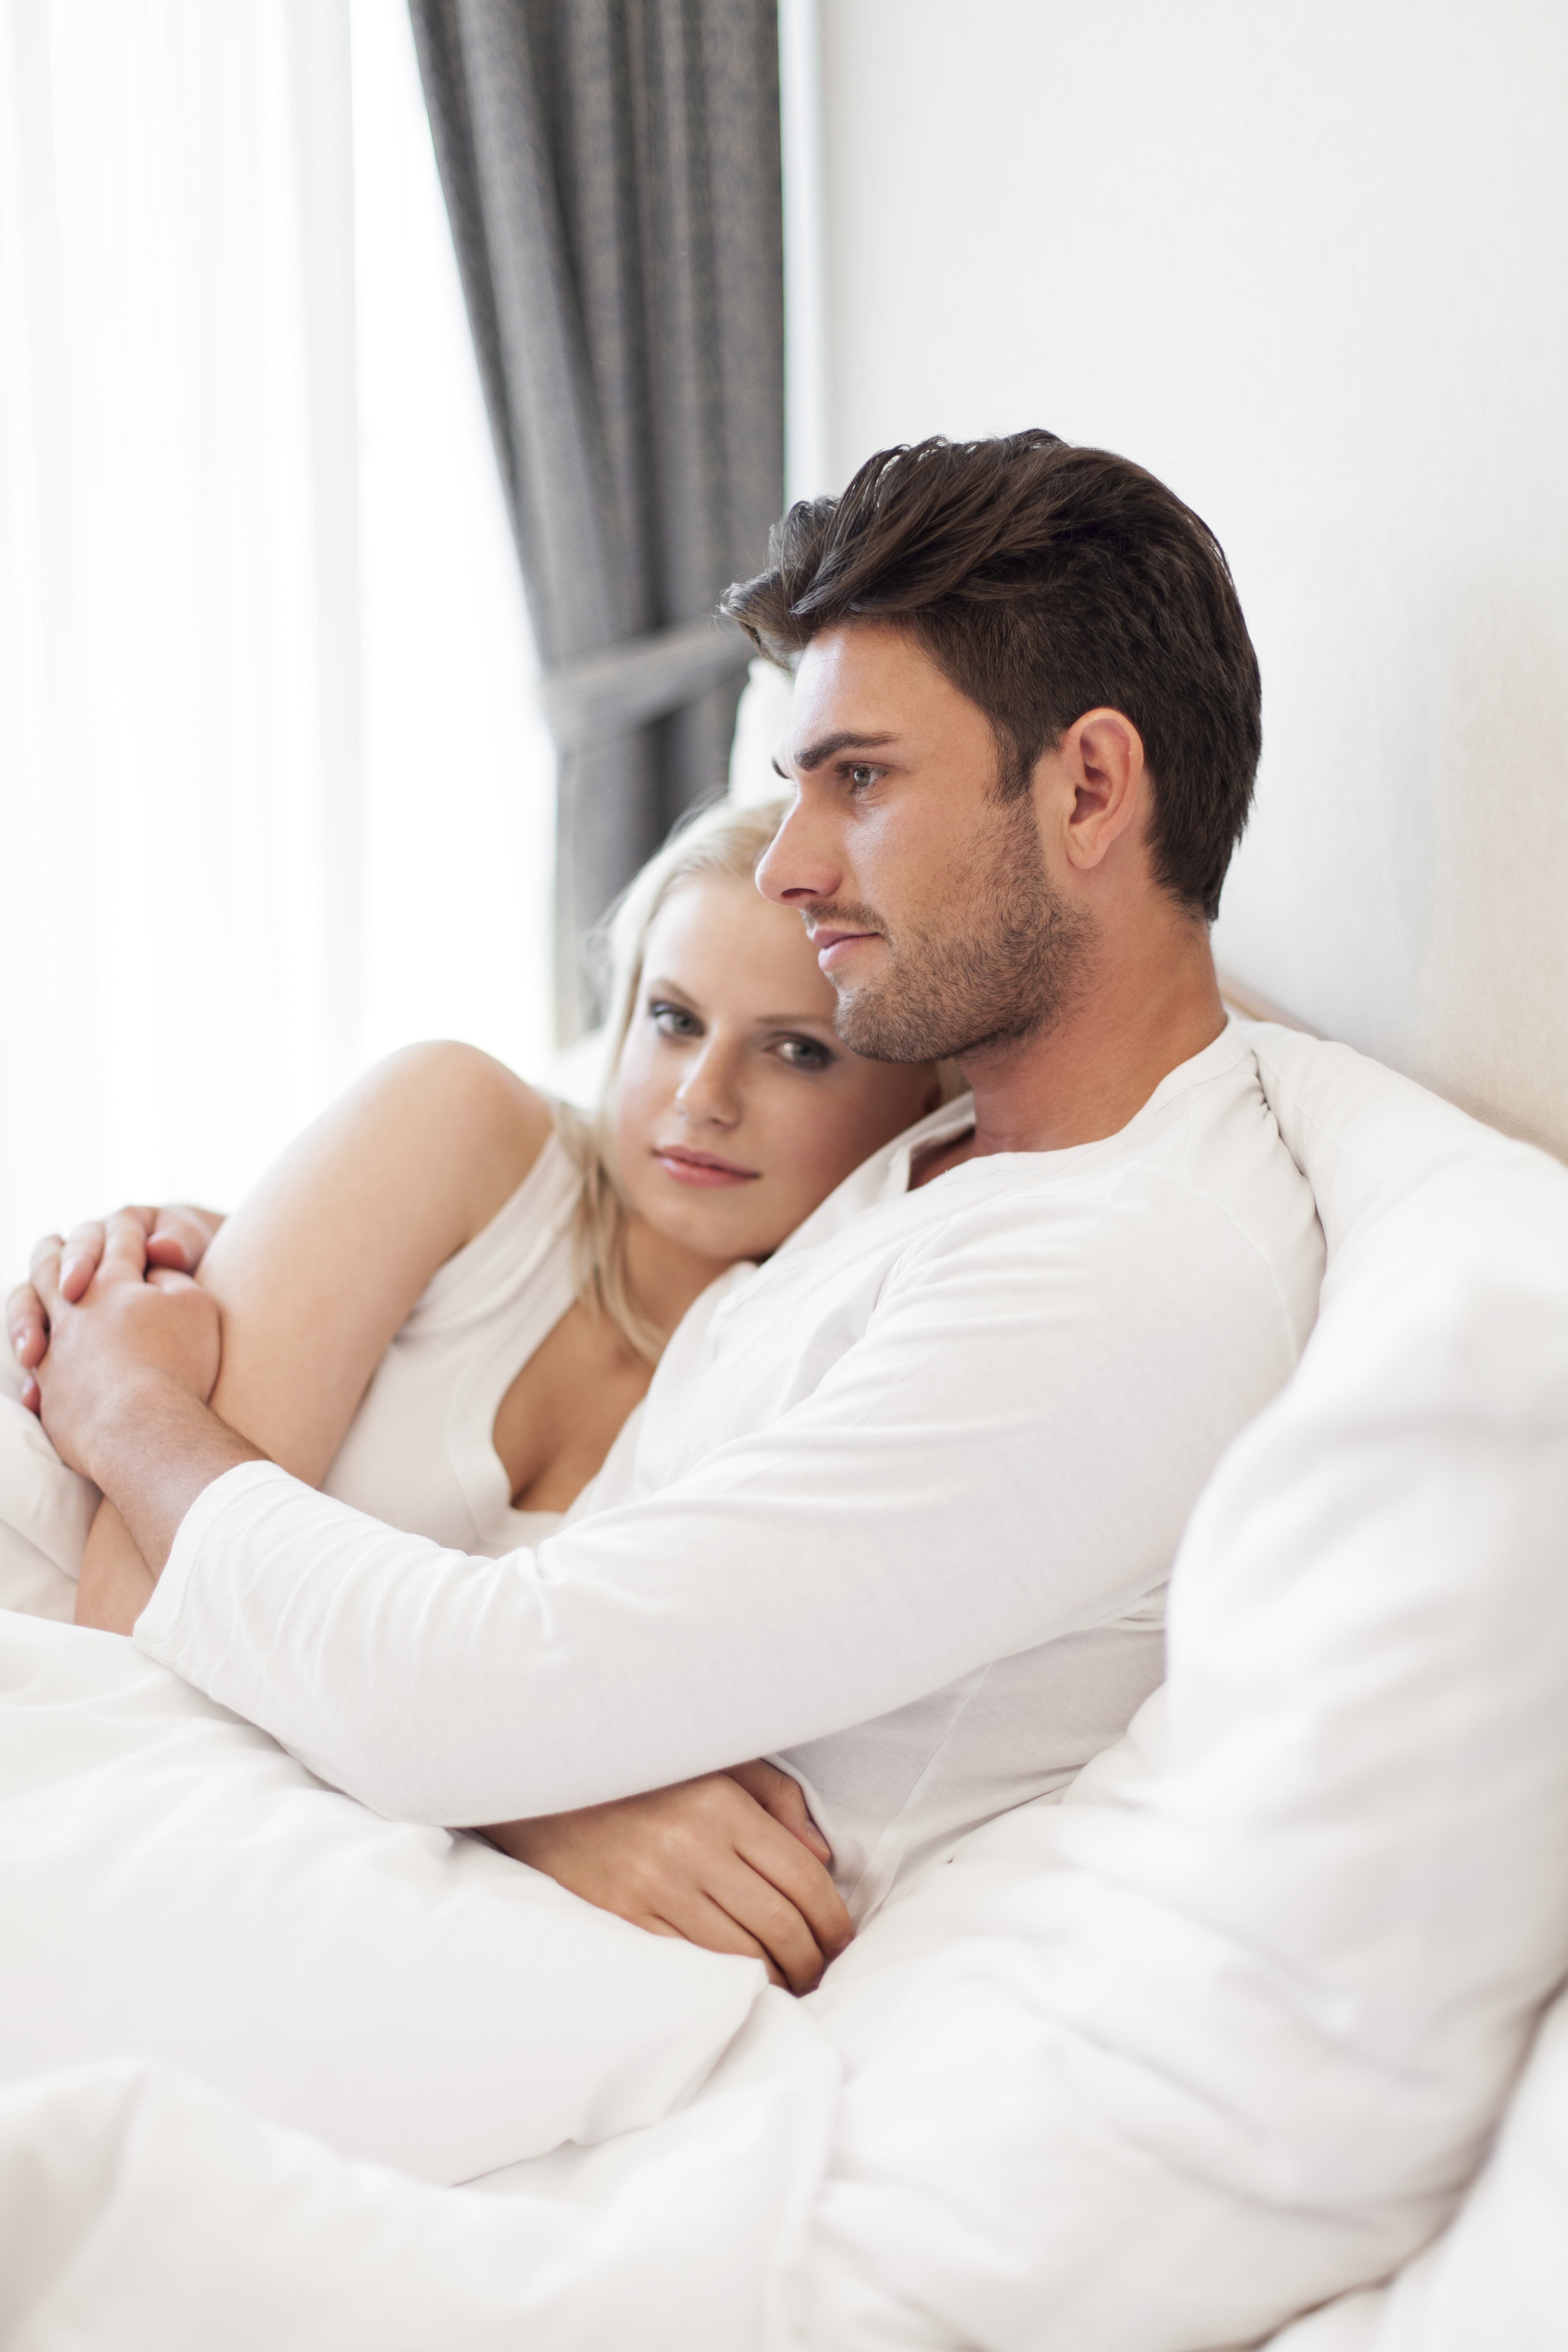 If you aren't ready for intercourse, say no. The best relationship you will ever have is open & honest.